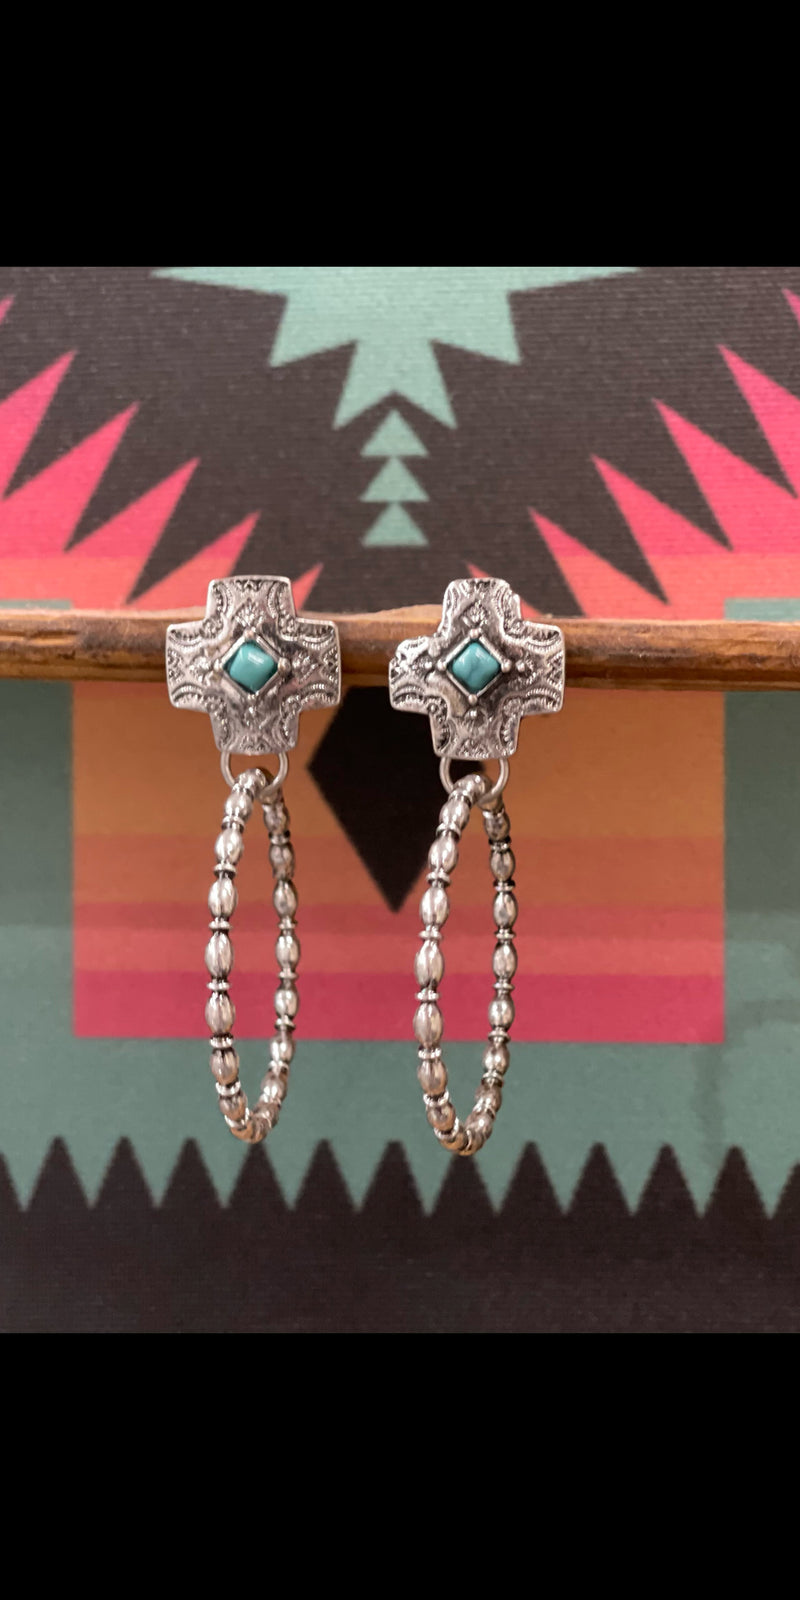 Everly Silver Turquoise Hoop Earrings